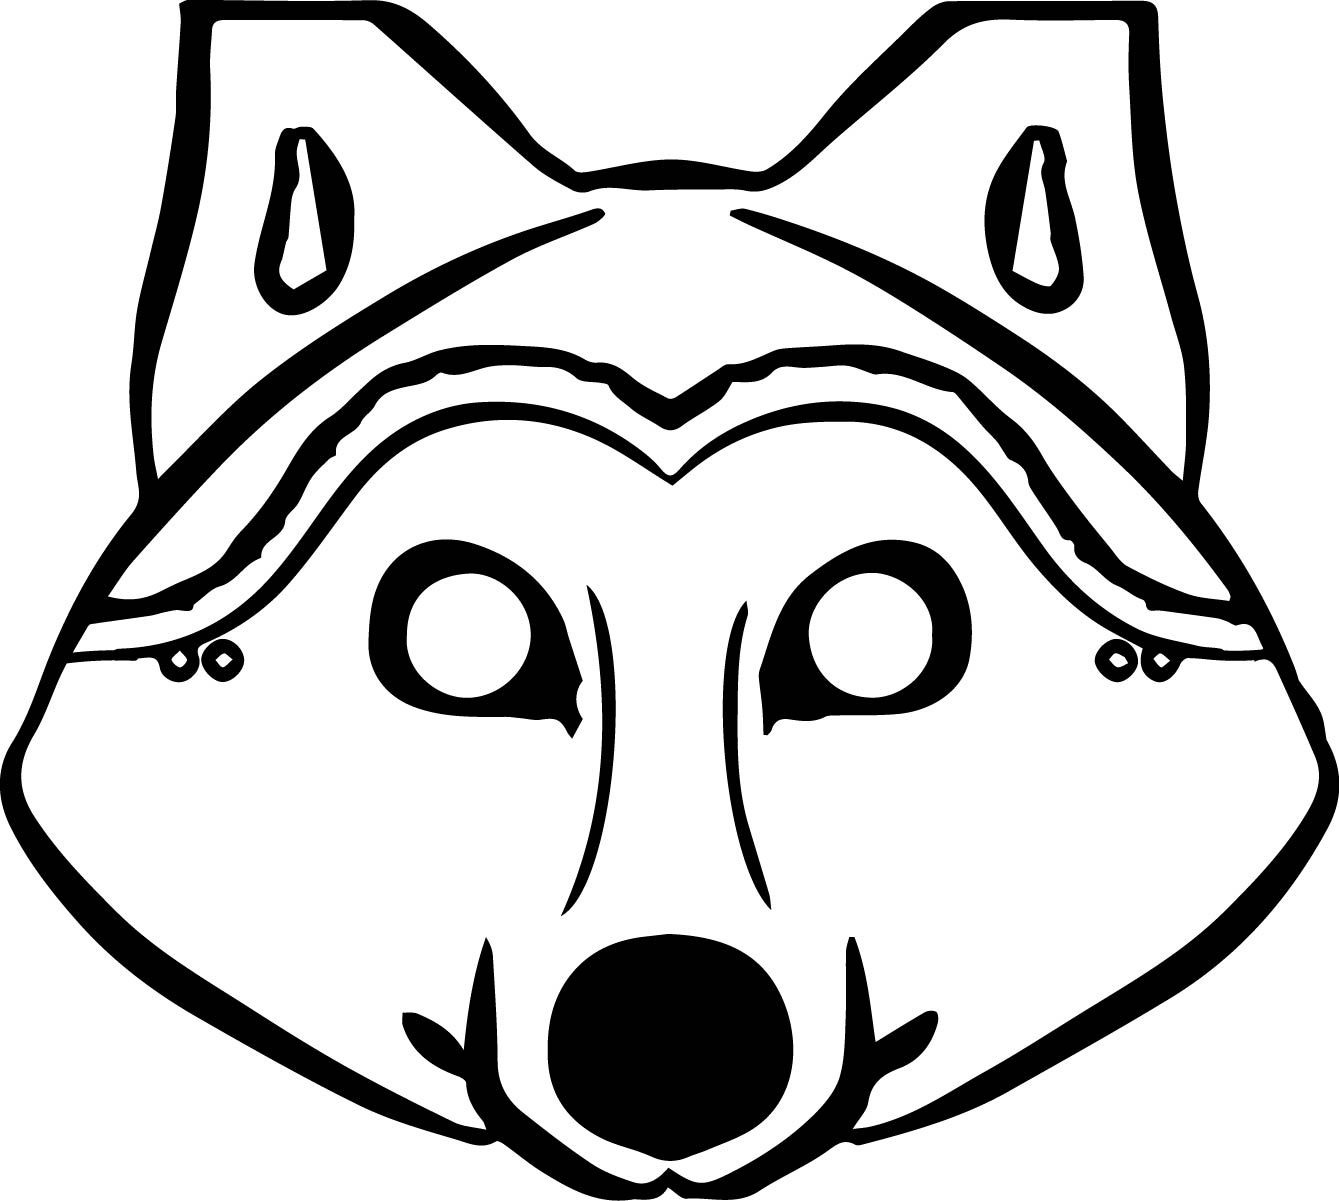 Awesome 3 Pigs Wolf Mask Coloring Pages | Wecoloringpage | Wolf Mask - Free Printable Wolf Mask